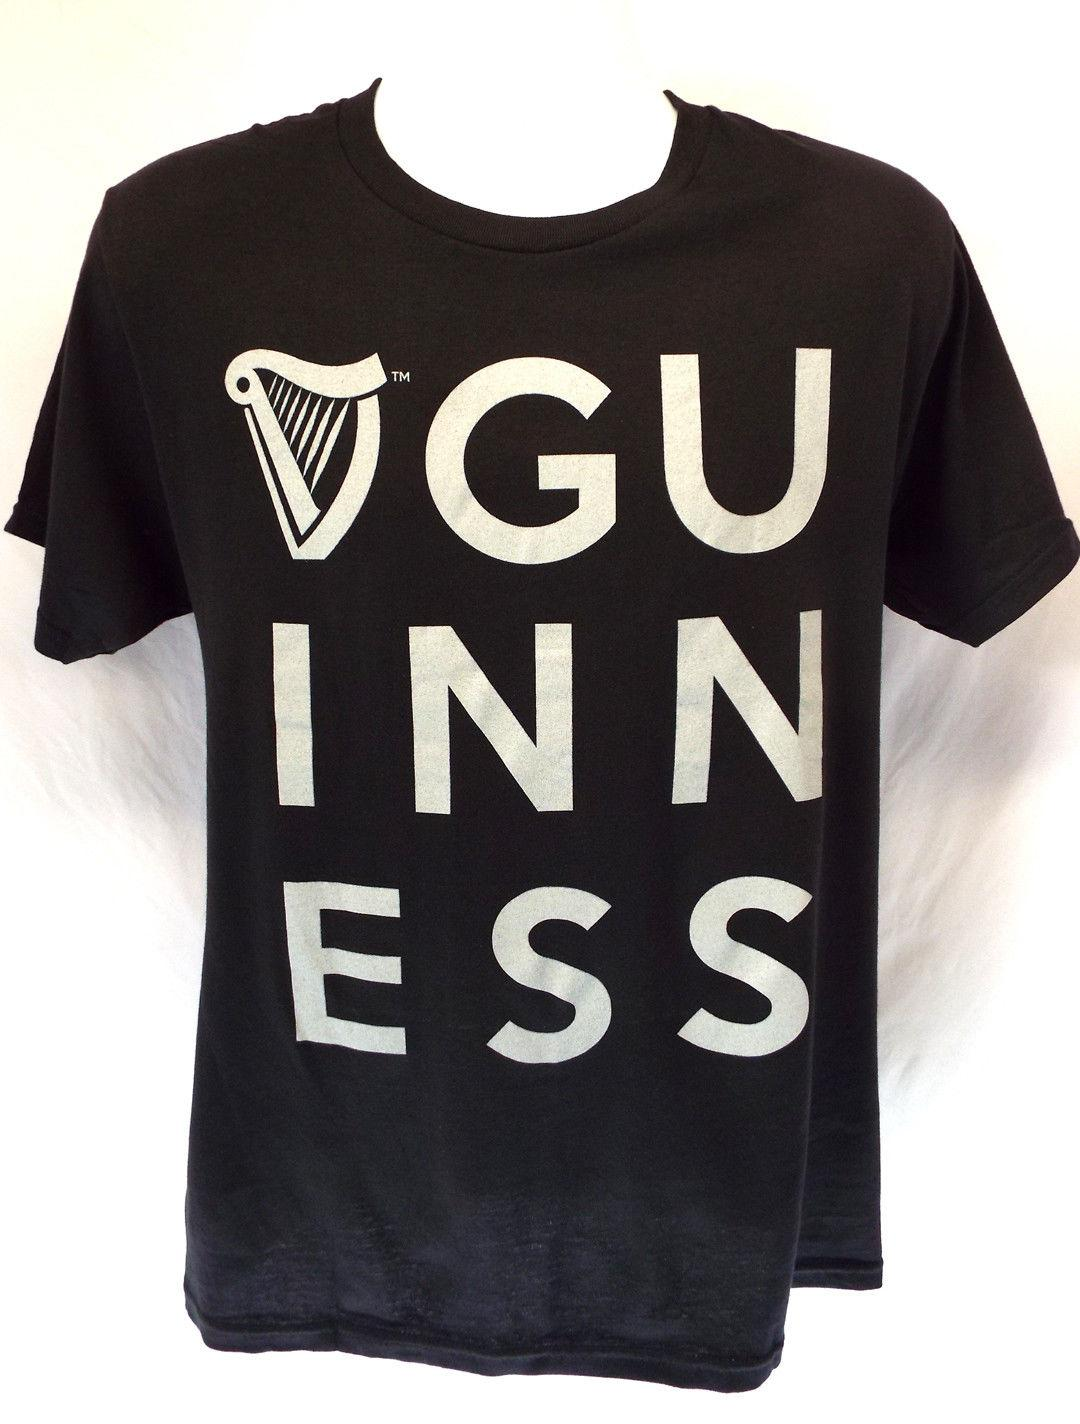 298122aa5d38 Guinness Block Letter Men S Black T Shirt M XXL NEW! Beer Lovers Style  Wholesale 2018 Hot Summer Casual Printing Men S T Shirt Cool Online T Shirts  Buy In T ...